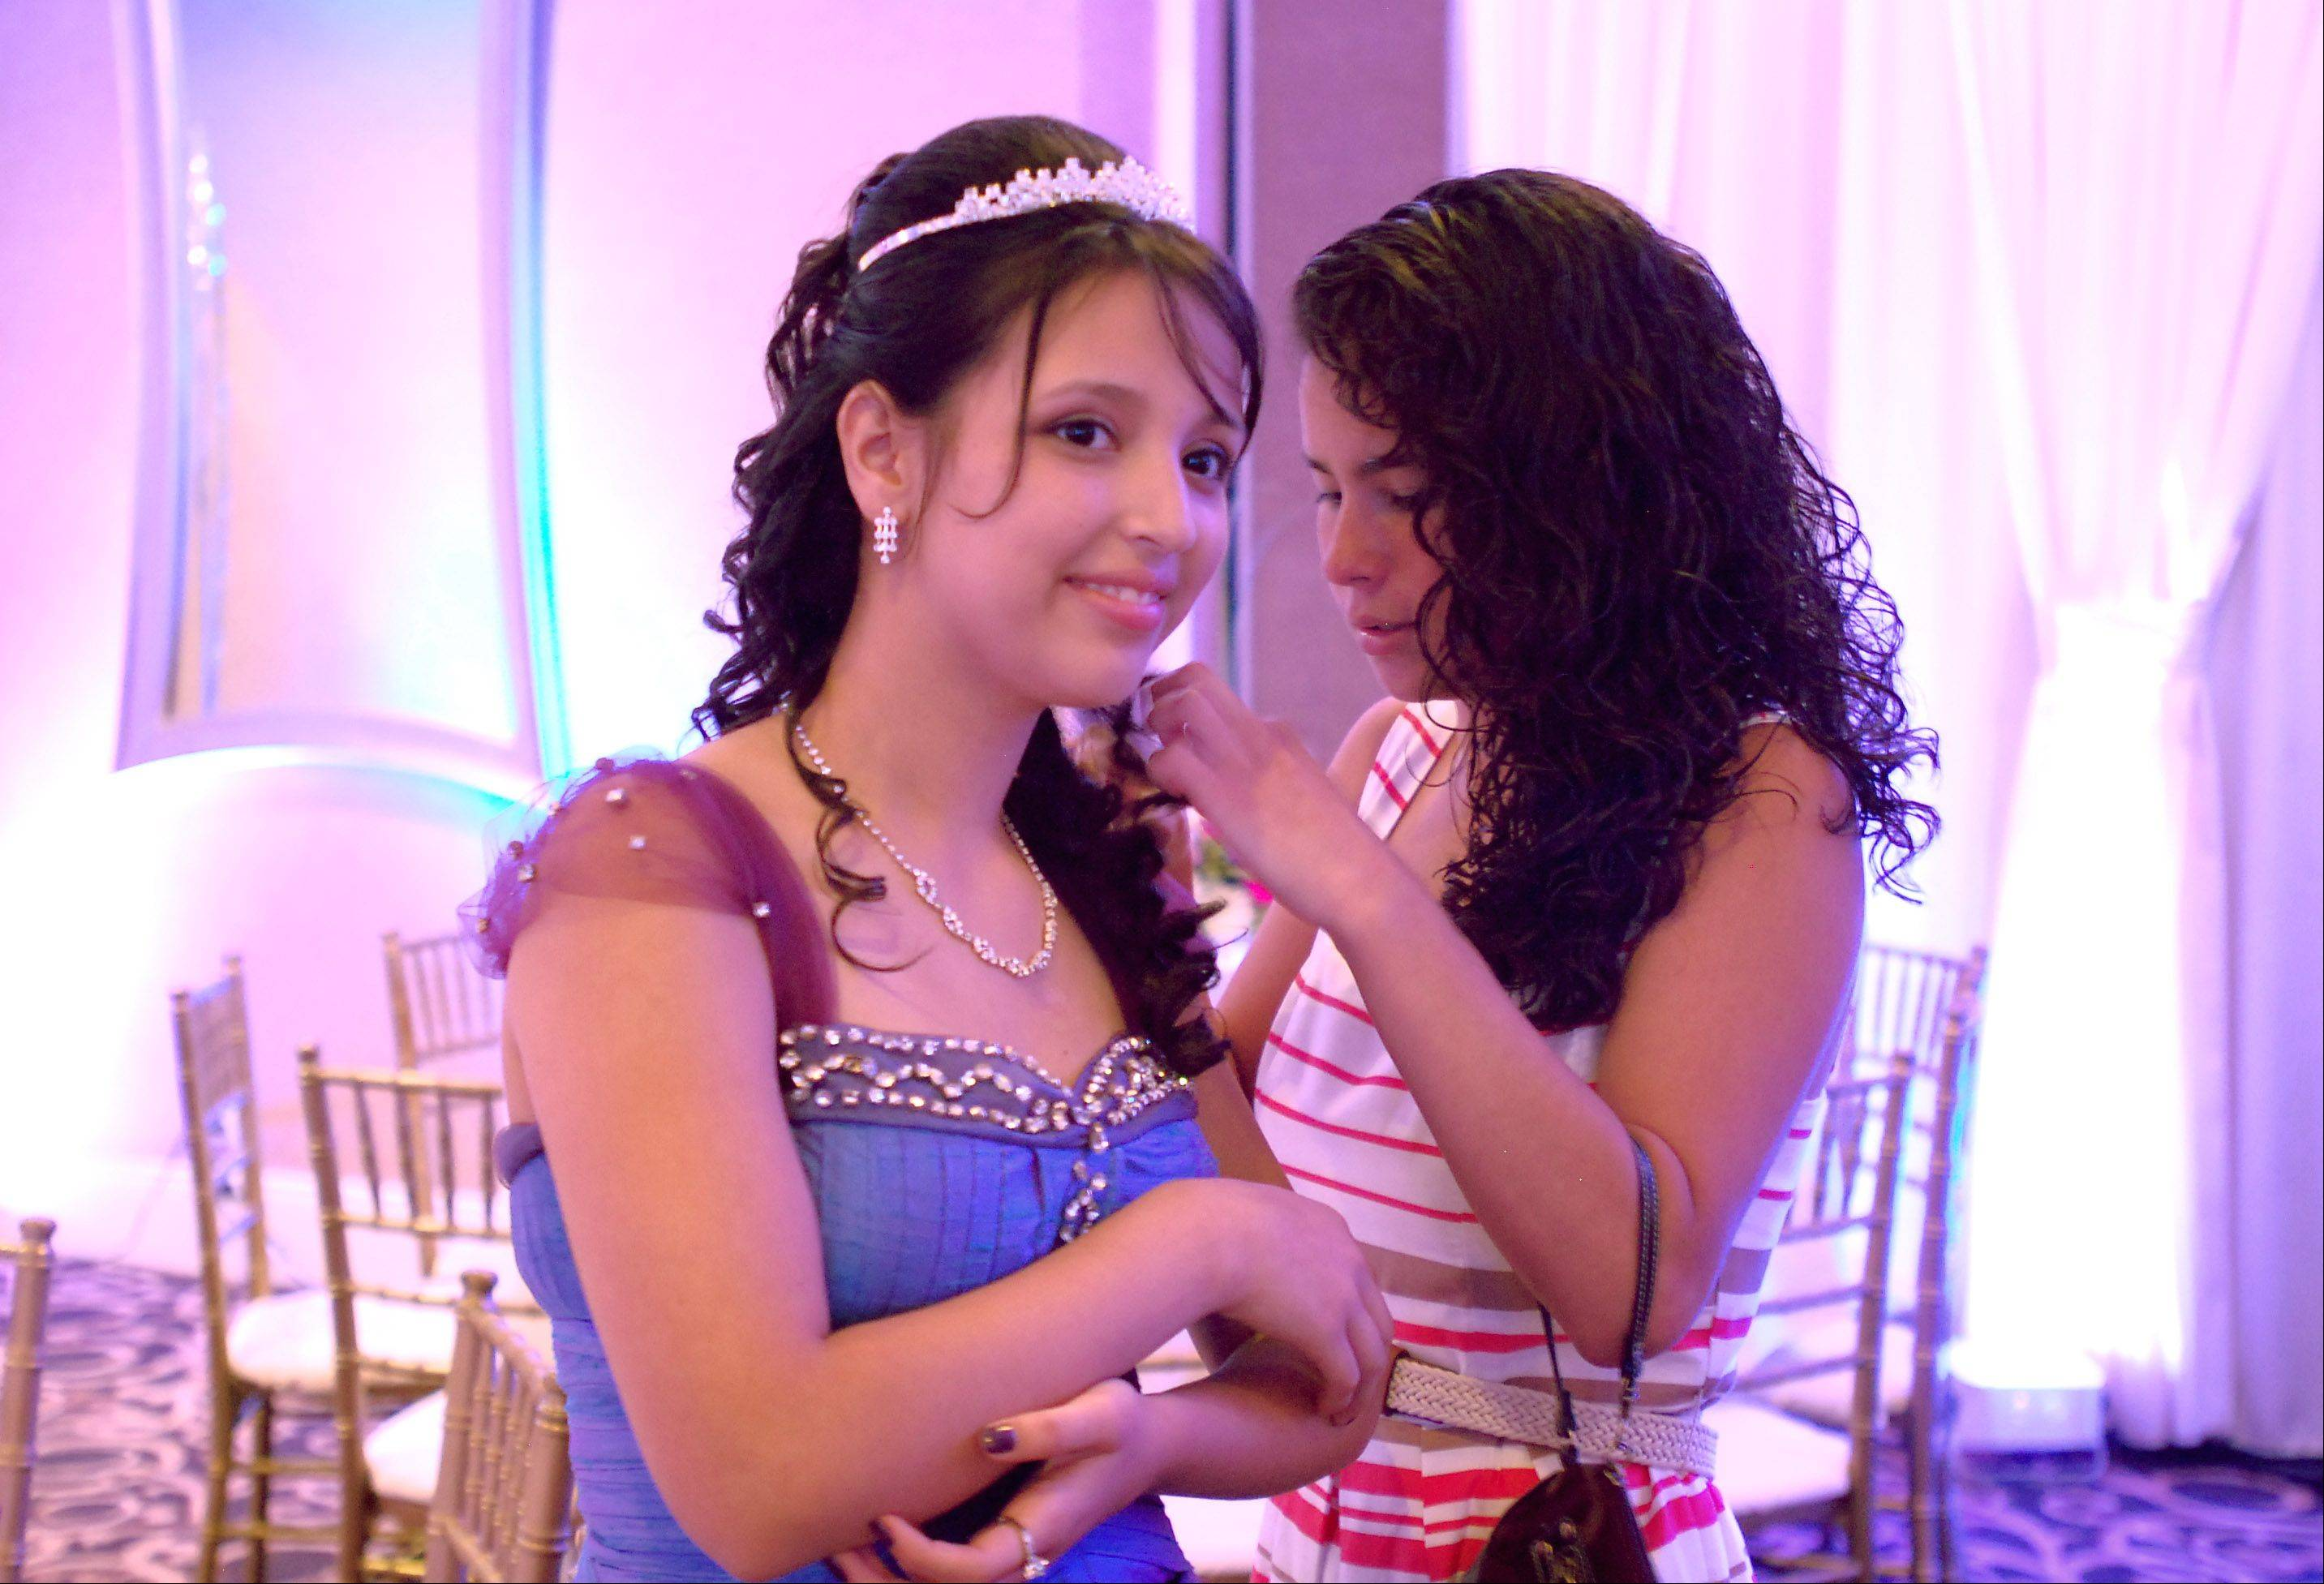 Zareli Saavedra, 14, of Hanover Park gets a little help from Eugenia Aguilera, 19, of Schaumburg. Zareli, who�s battling brain cancer, had her dream of a quincea�era came true thanks to the Make-A-Wish foundation Sunday in Streamwood.